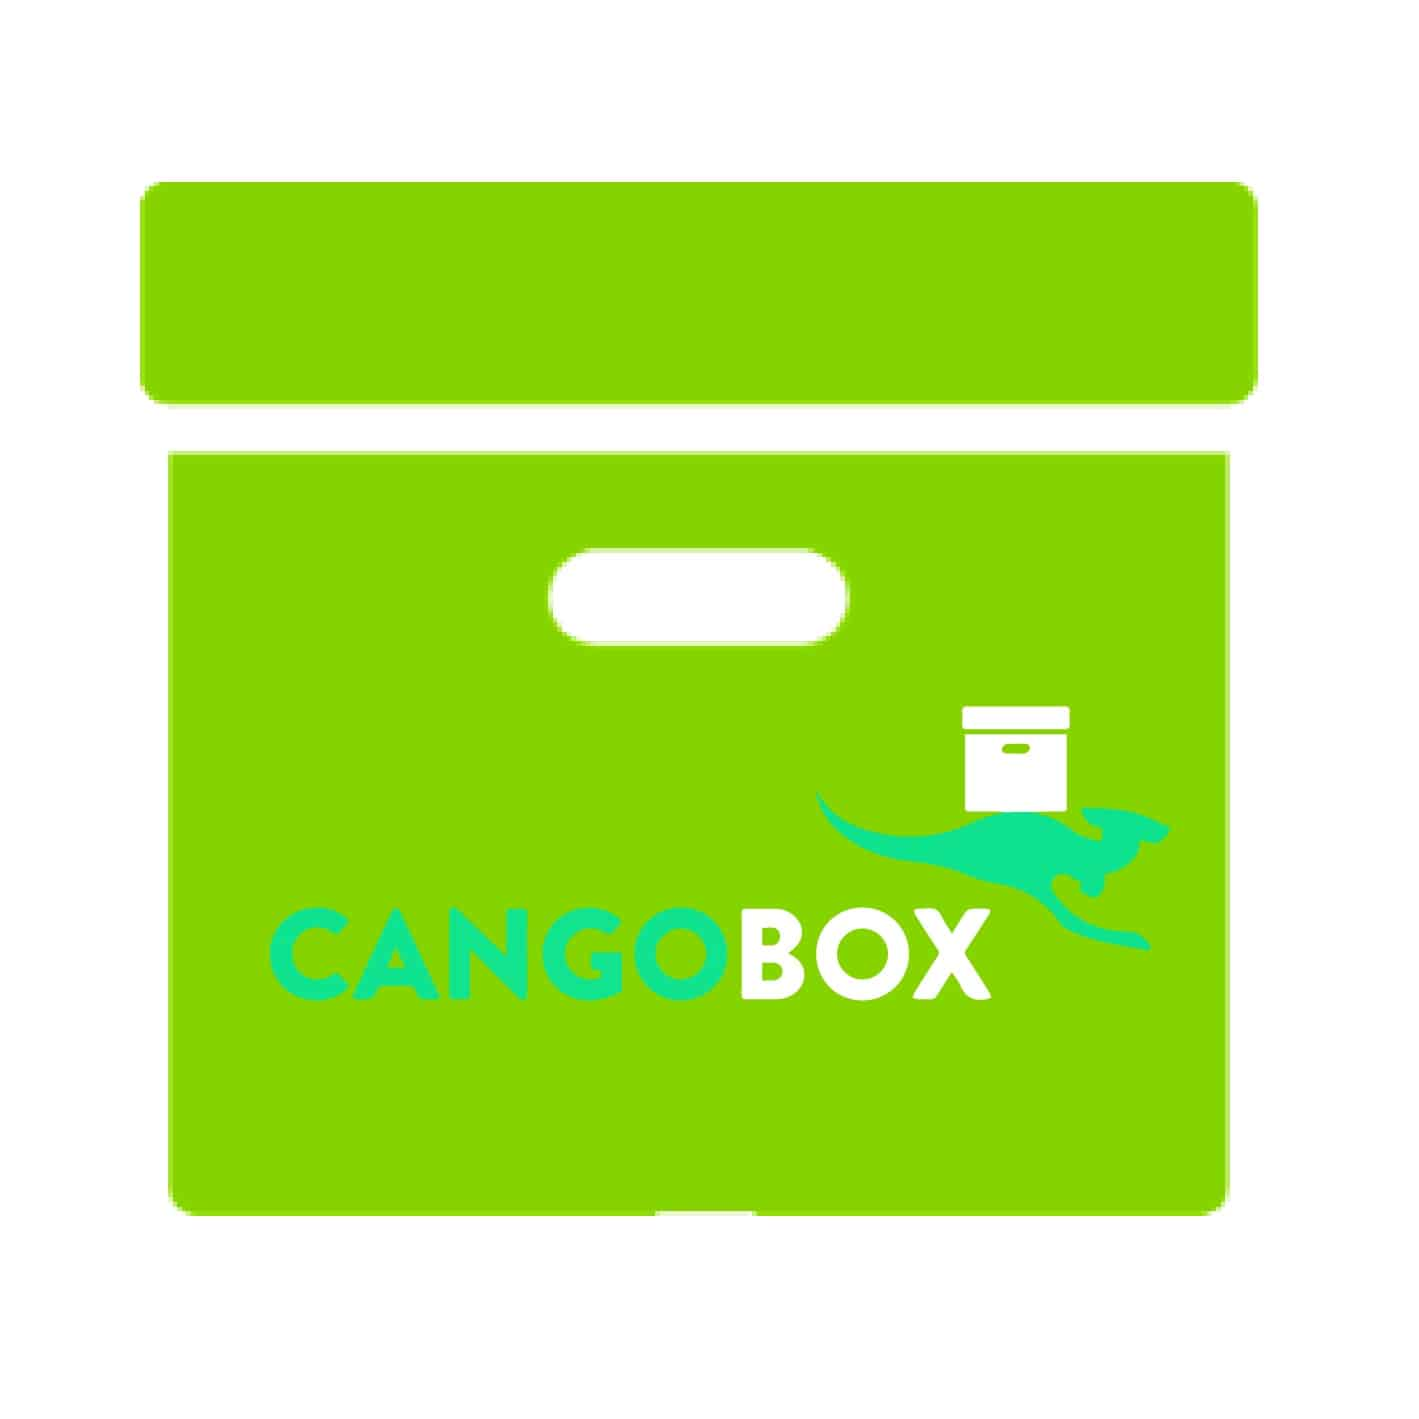 "<span style=""color:red;"">Save 5%</span><br />CANGOBOX: The easiest way to ship packages within the EU!"